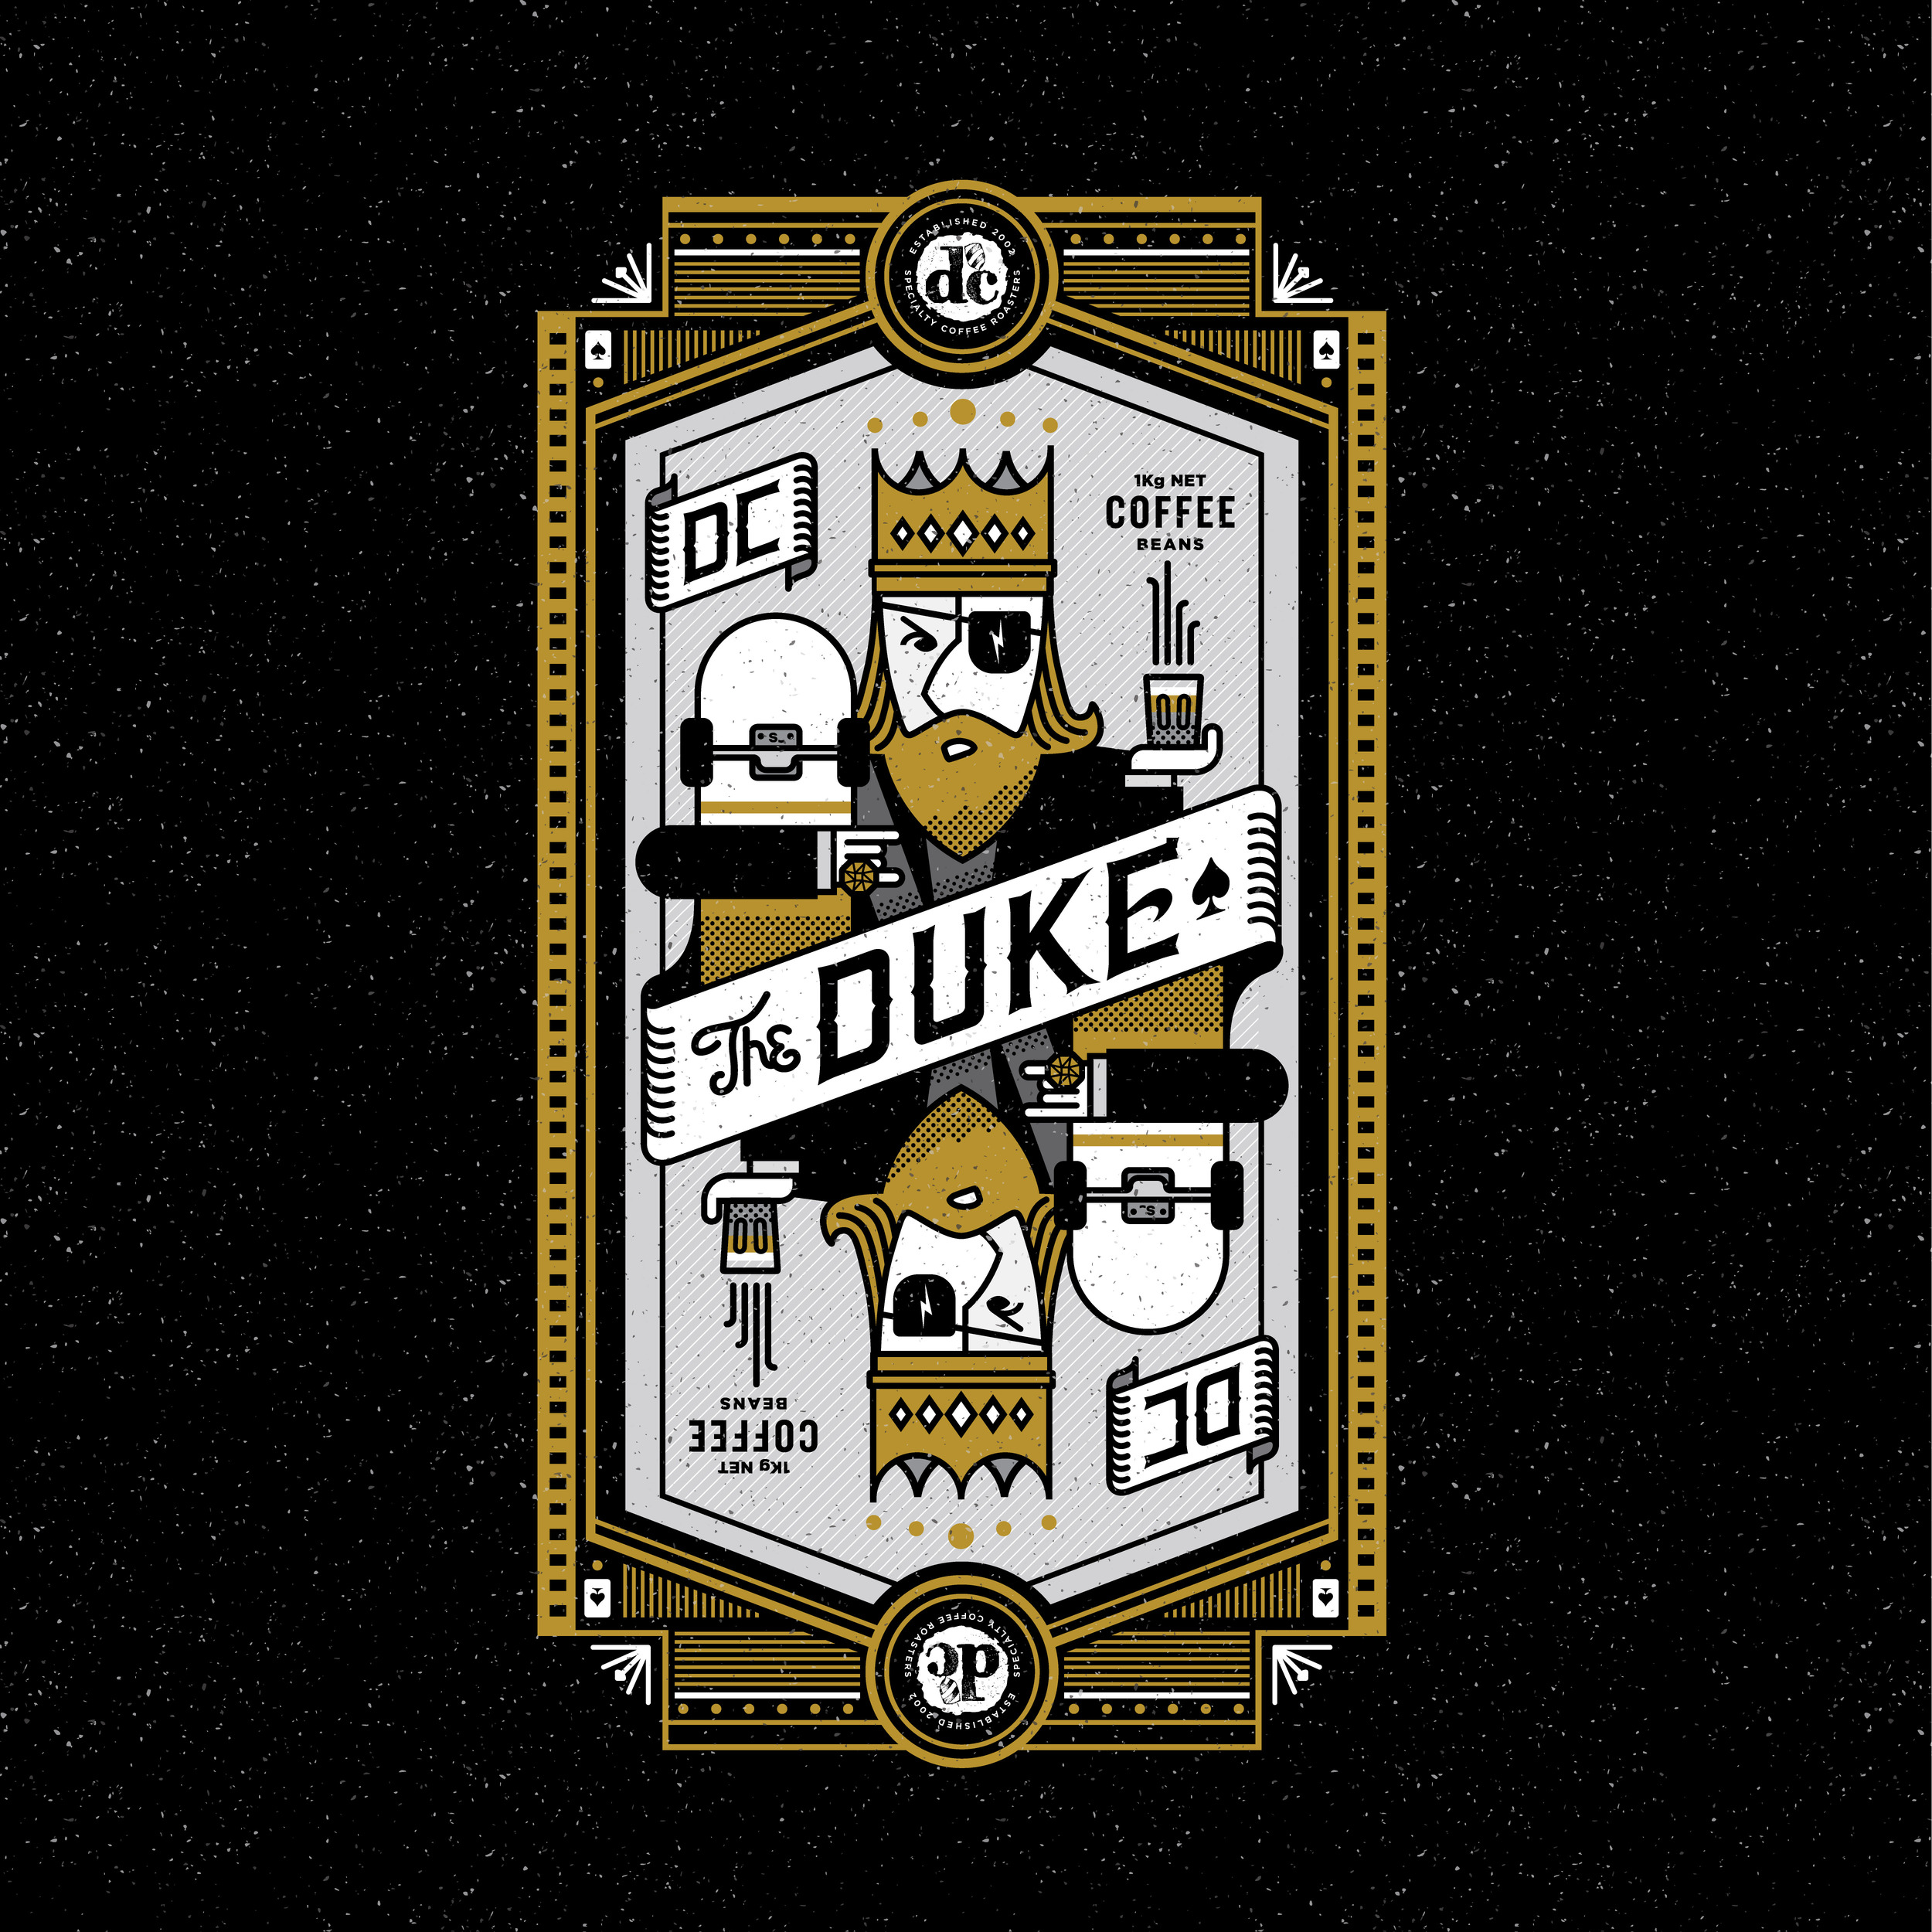 dc coffee roasters the duke, illustrations by created by south, design and development created by south, packaging, illustration, coffee design